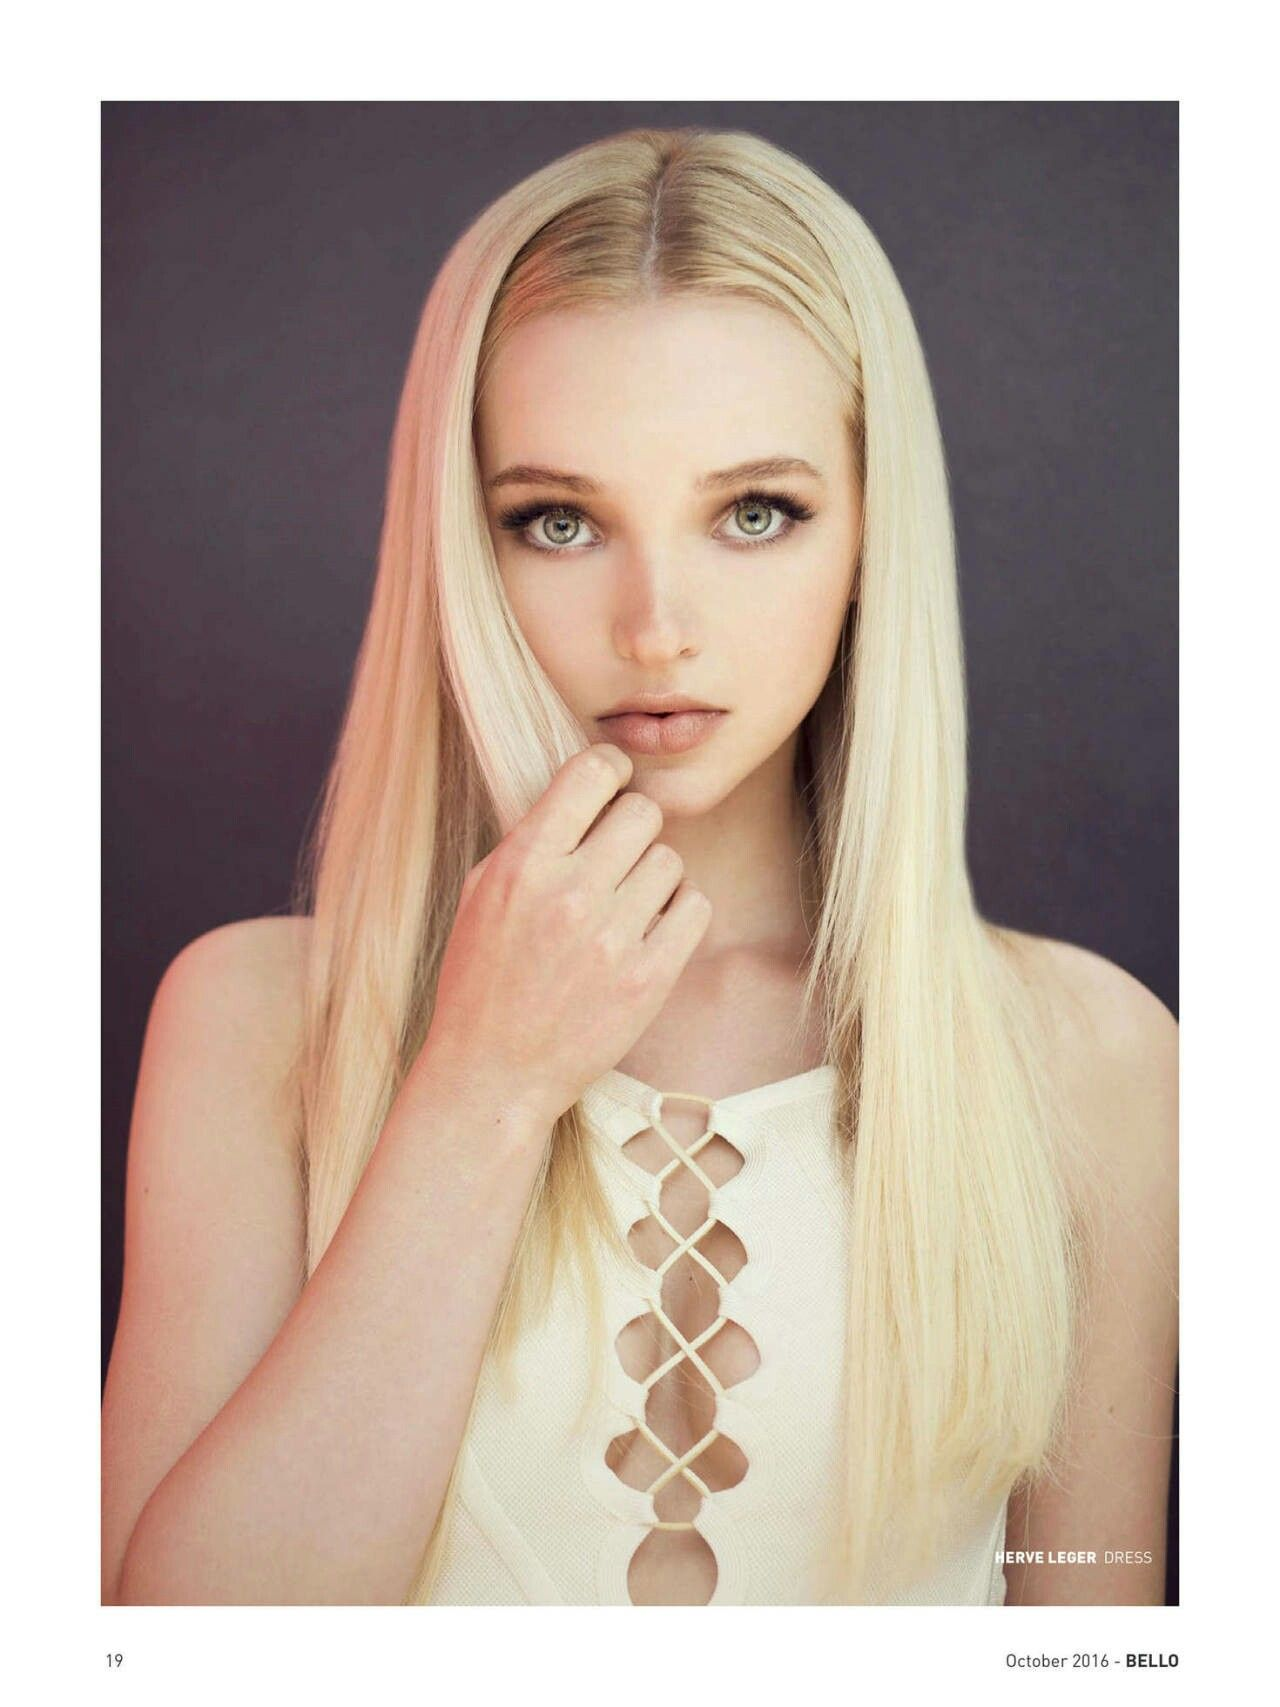 Pin By Pame Calderon On Dove Cameron Pinterest Descendants Celebrity And Actresses